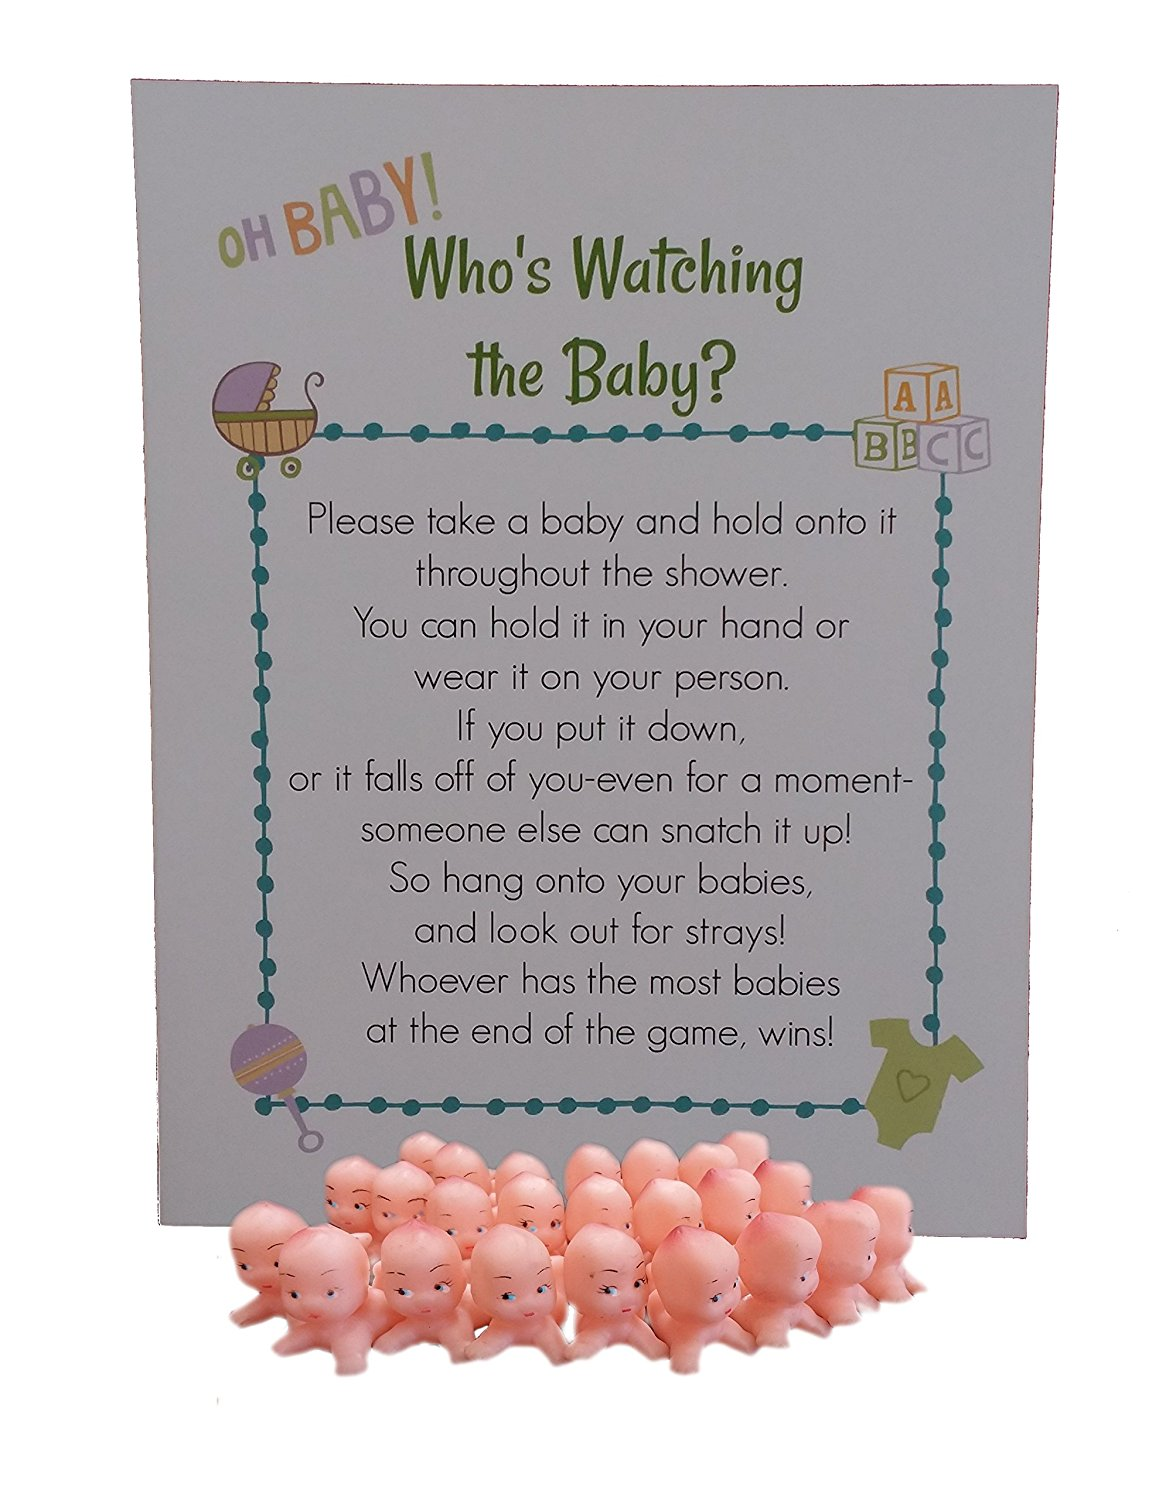 Whos Watching The Baby Shower Game for 24 Players with Plastic Babies and Instruction Sheet (Caucasian)